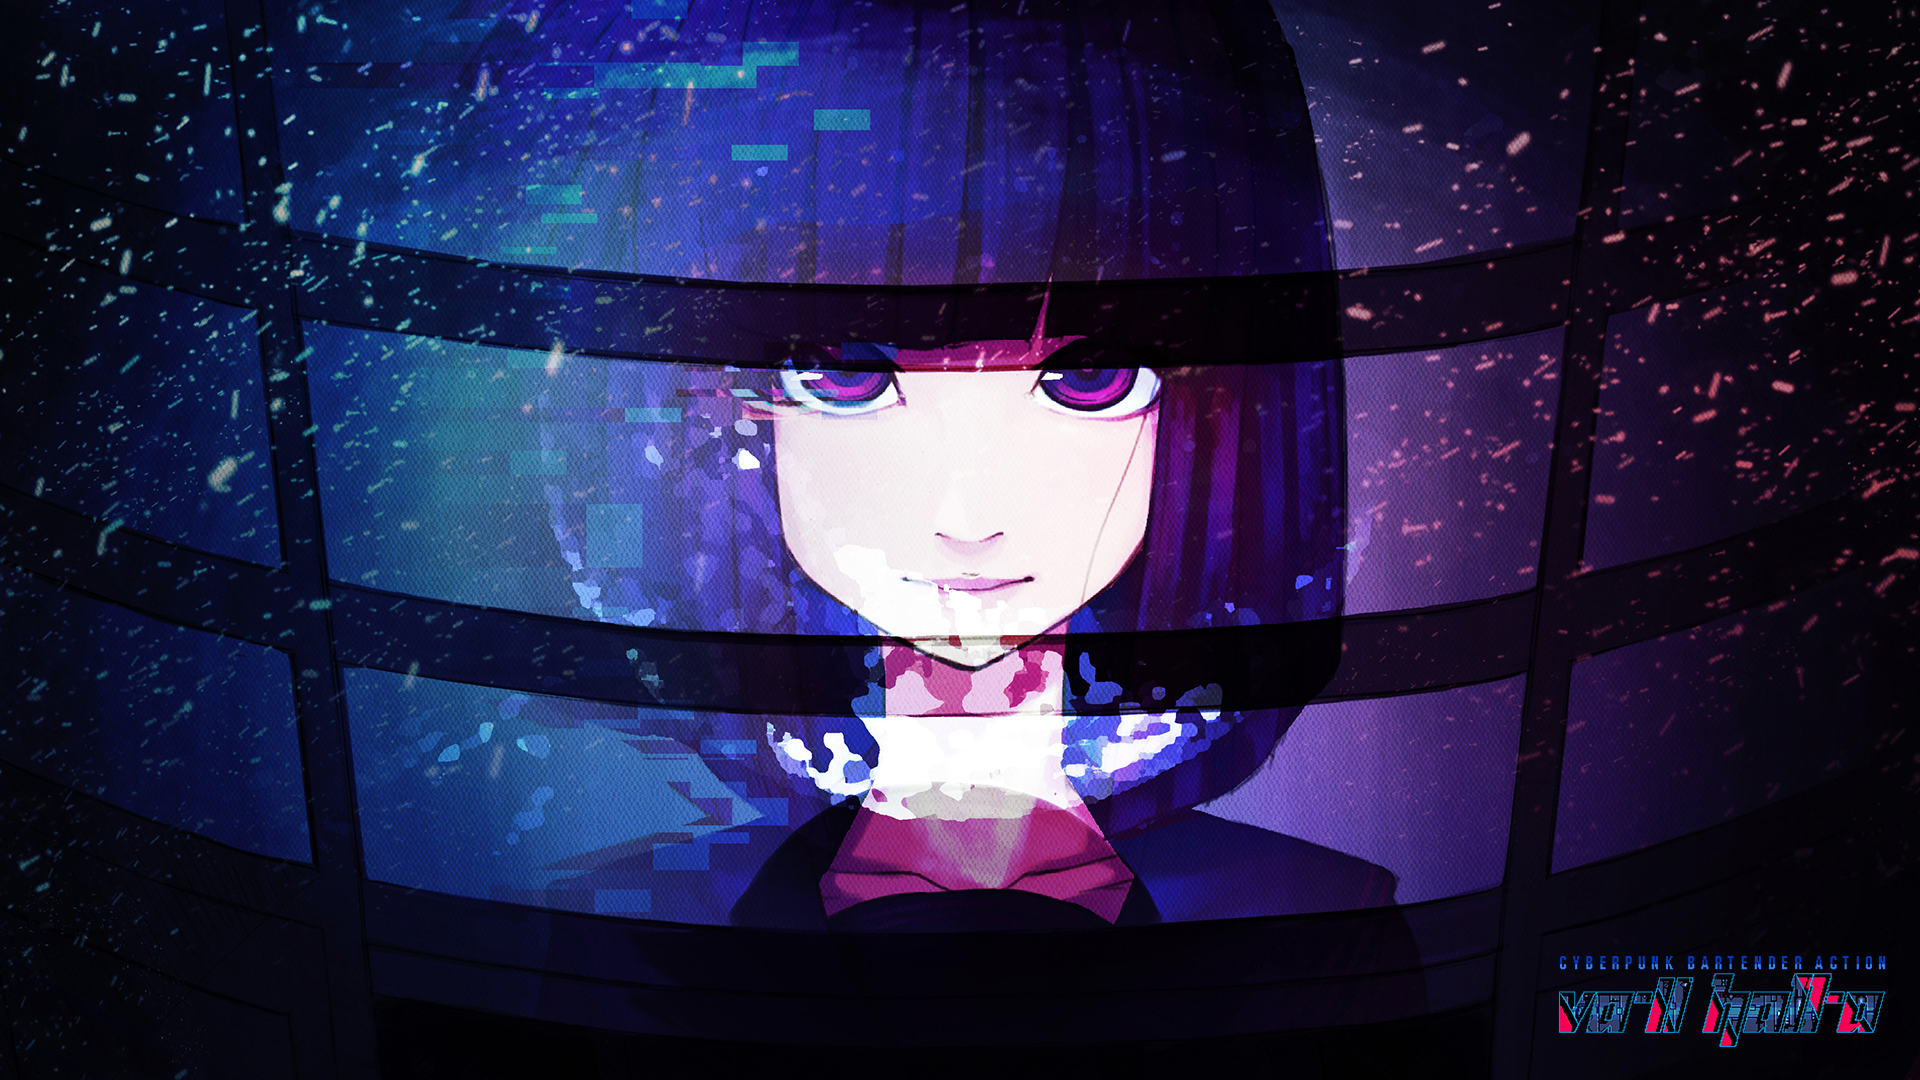 Va 11 Hall A Anna Hq Backgrounds Hd Wallpapers Gallery Gallsource Com アニメ